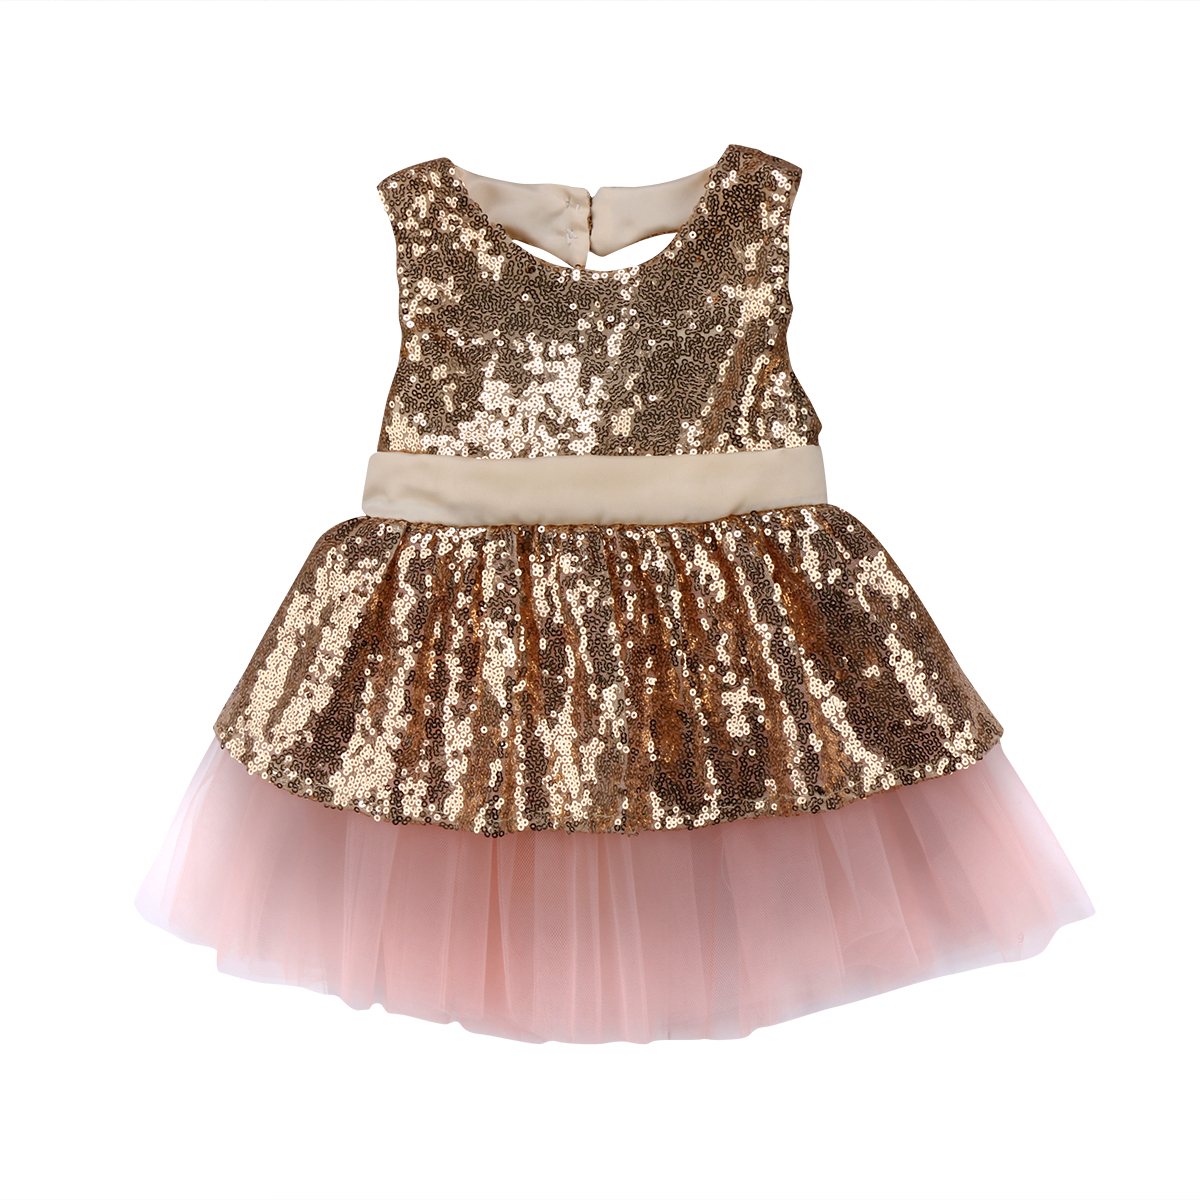 Toddler Kid Baby Girls Sleeveless Rainbow Sequined Lace Princess Romper Dress